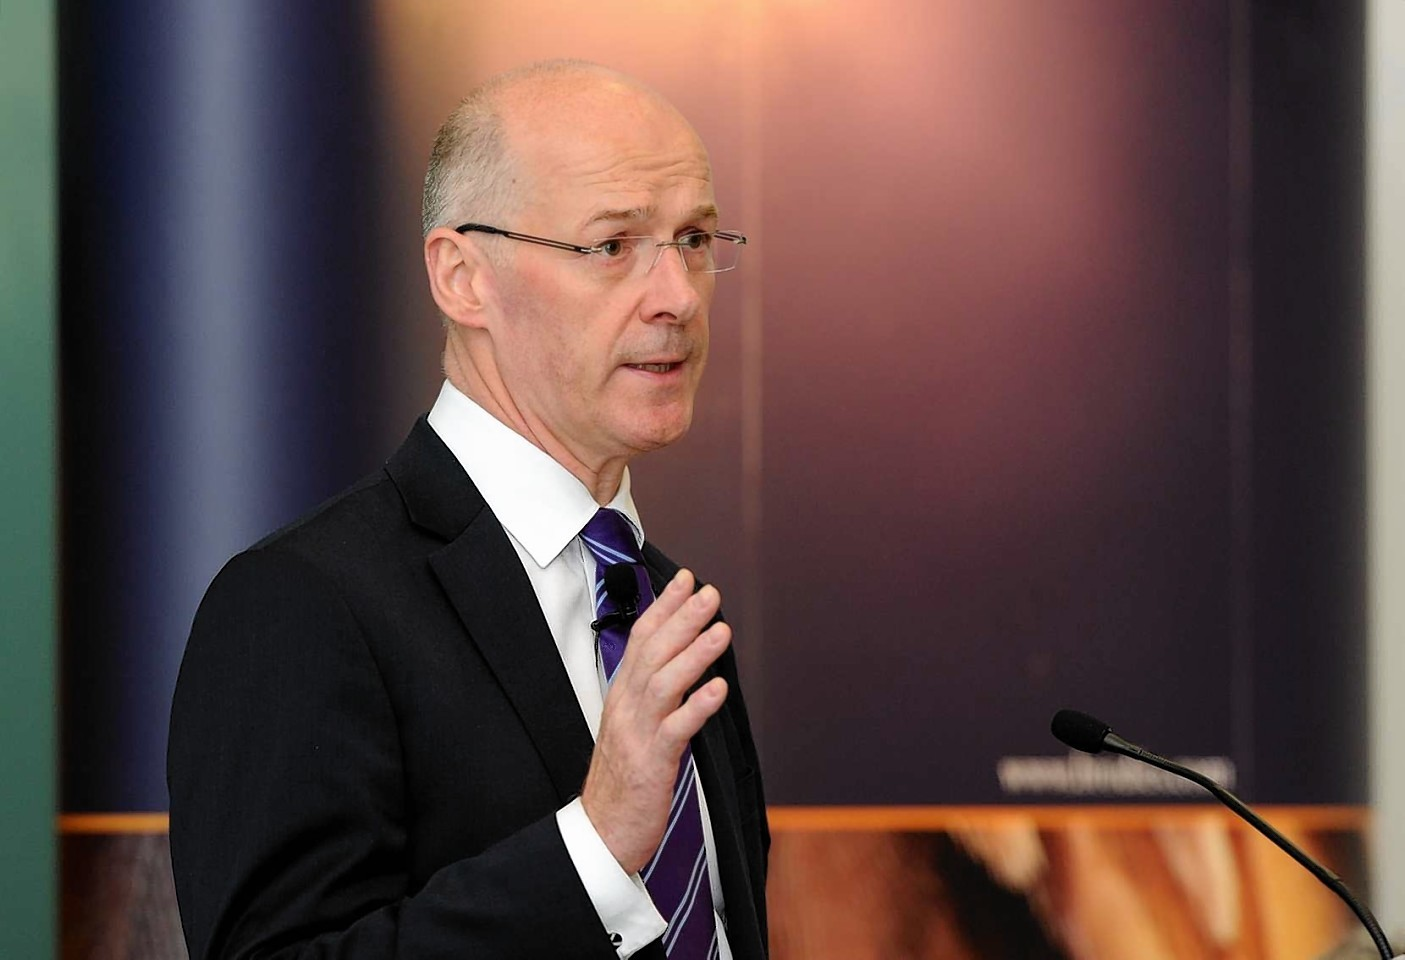 MSP Swinney, cabinet secretary for Finance, Employment and Sustainable Growth, states the case for independence